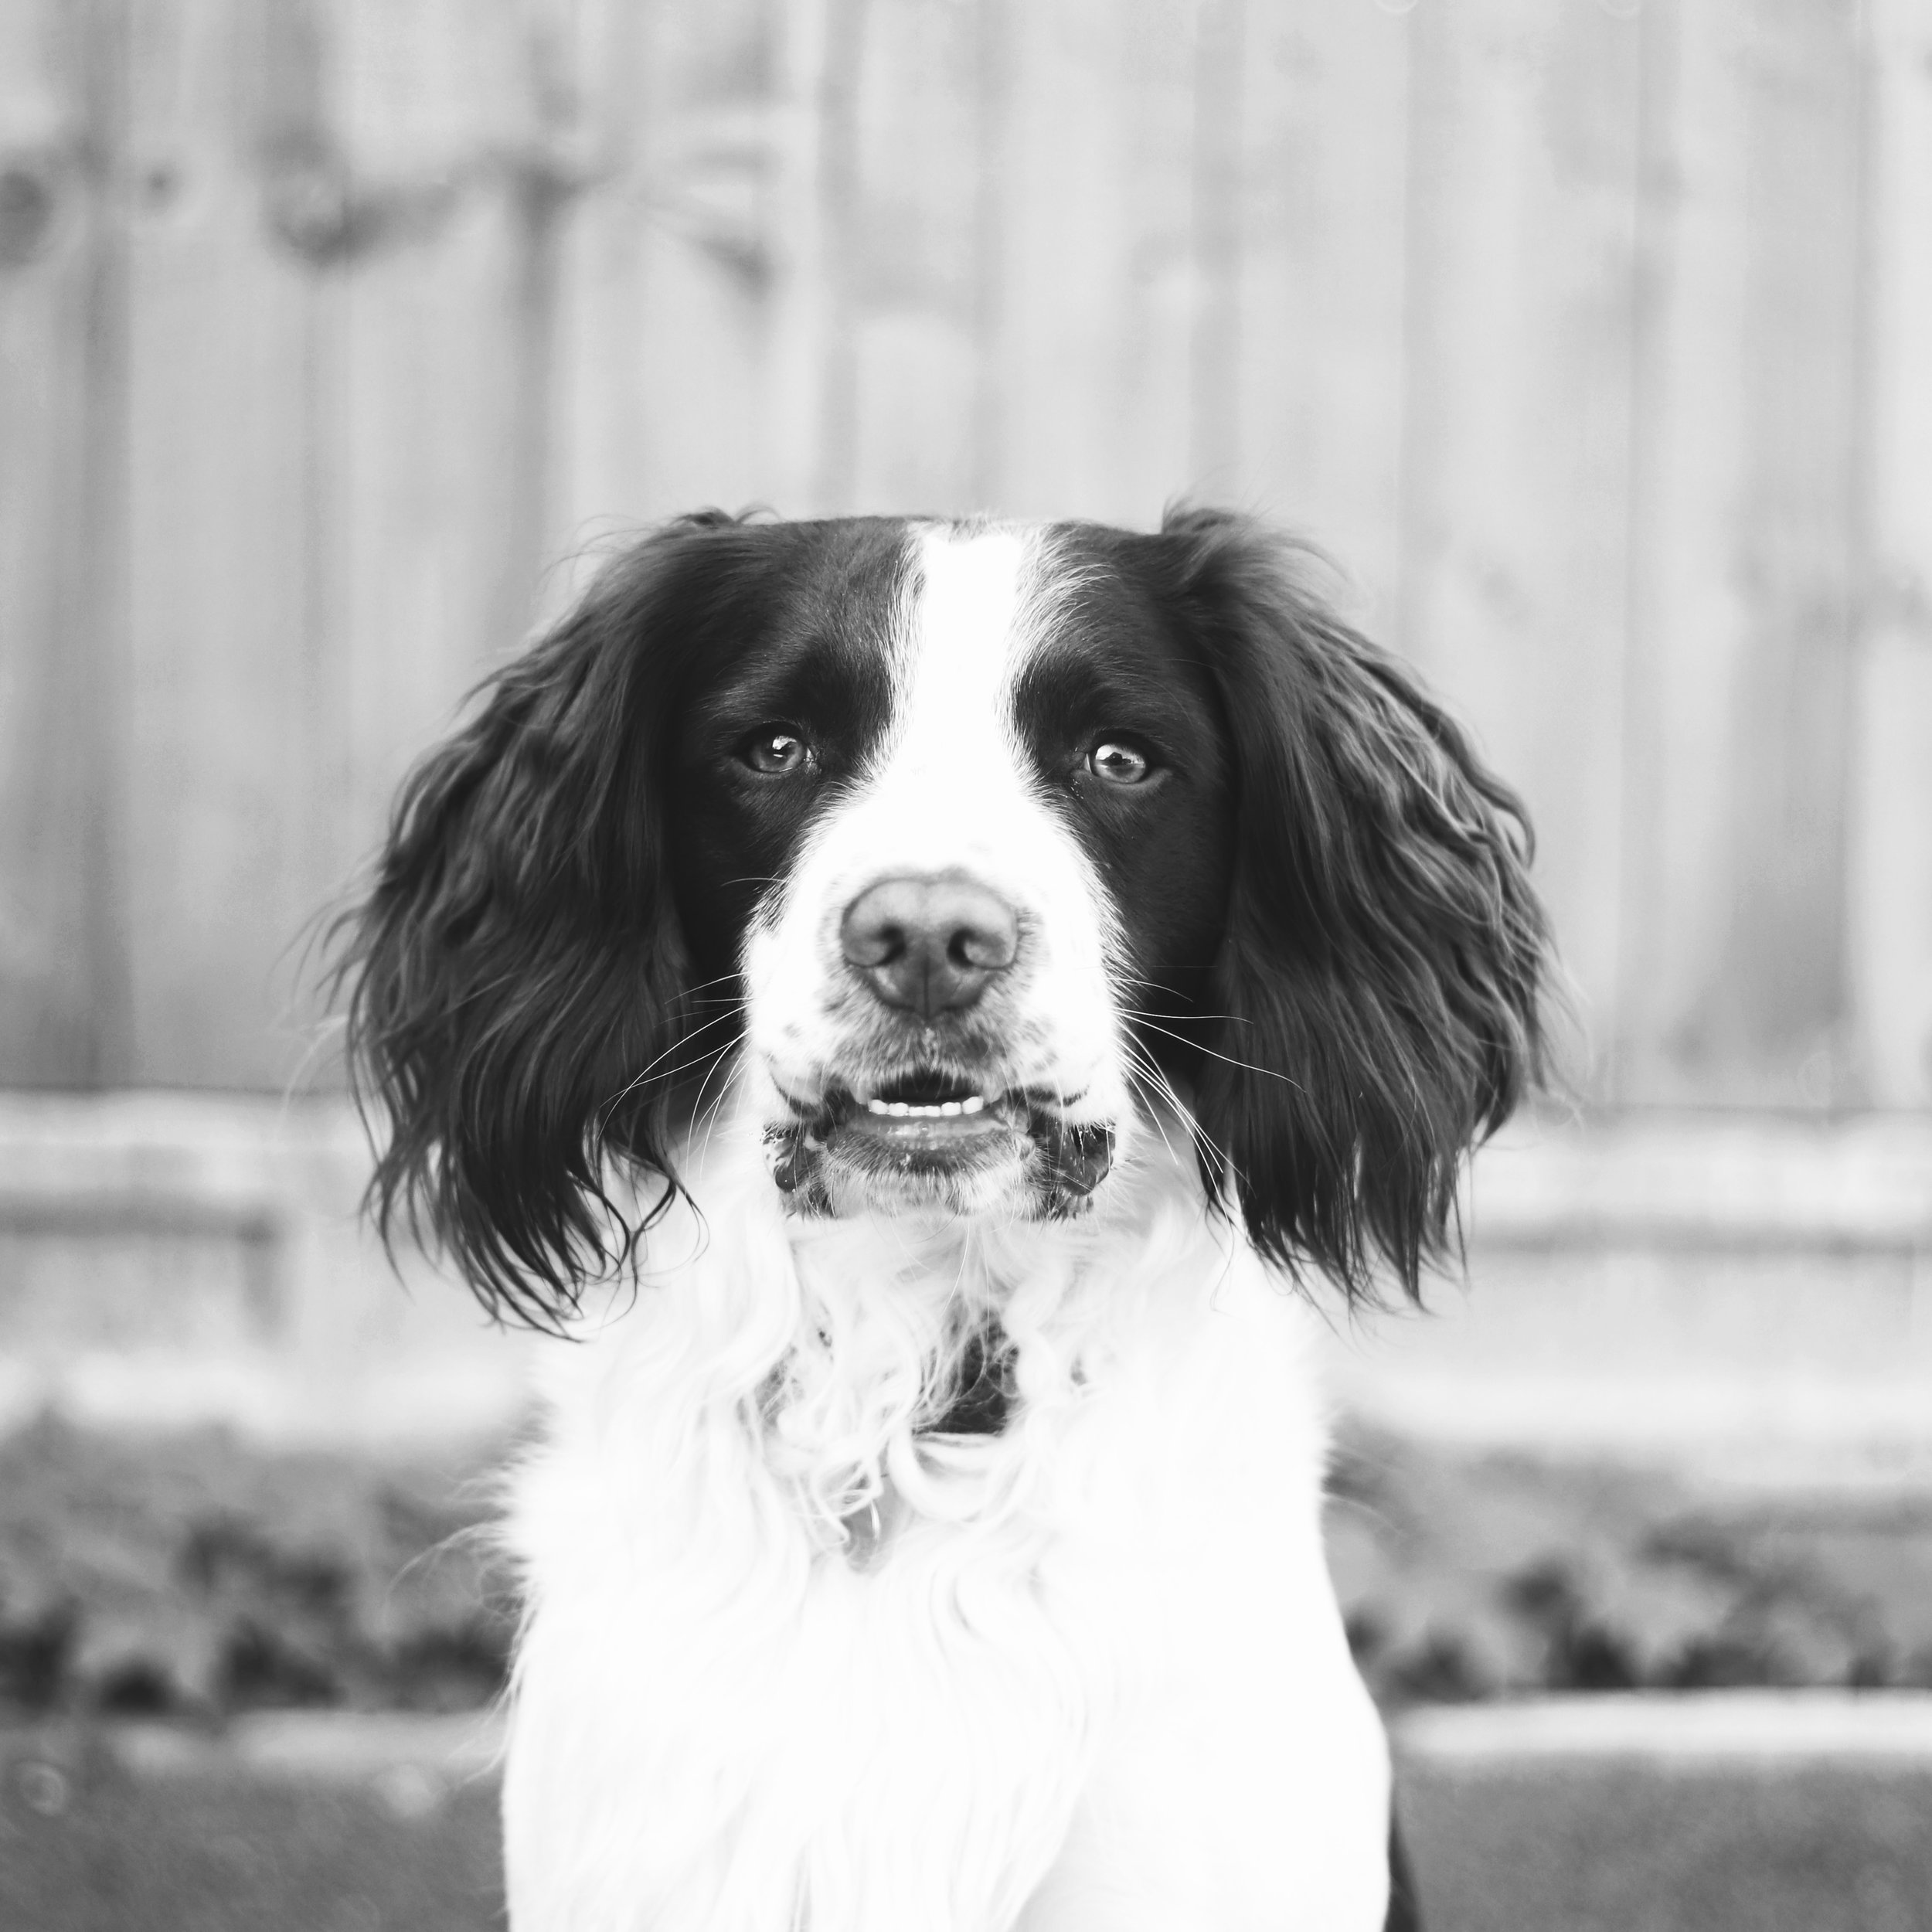 Monty - And not forgetting the four-legged team member of the Charm-ed squad: Monty the Springer Spaniel. If he's not snoozing or munching on cucumber, you'll find him frollicking in the office garden. Oh, and if you hear a strange noise during a conference call, it's probably Monts.